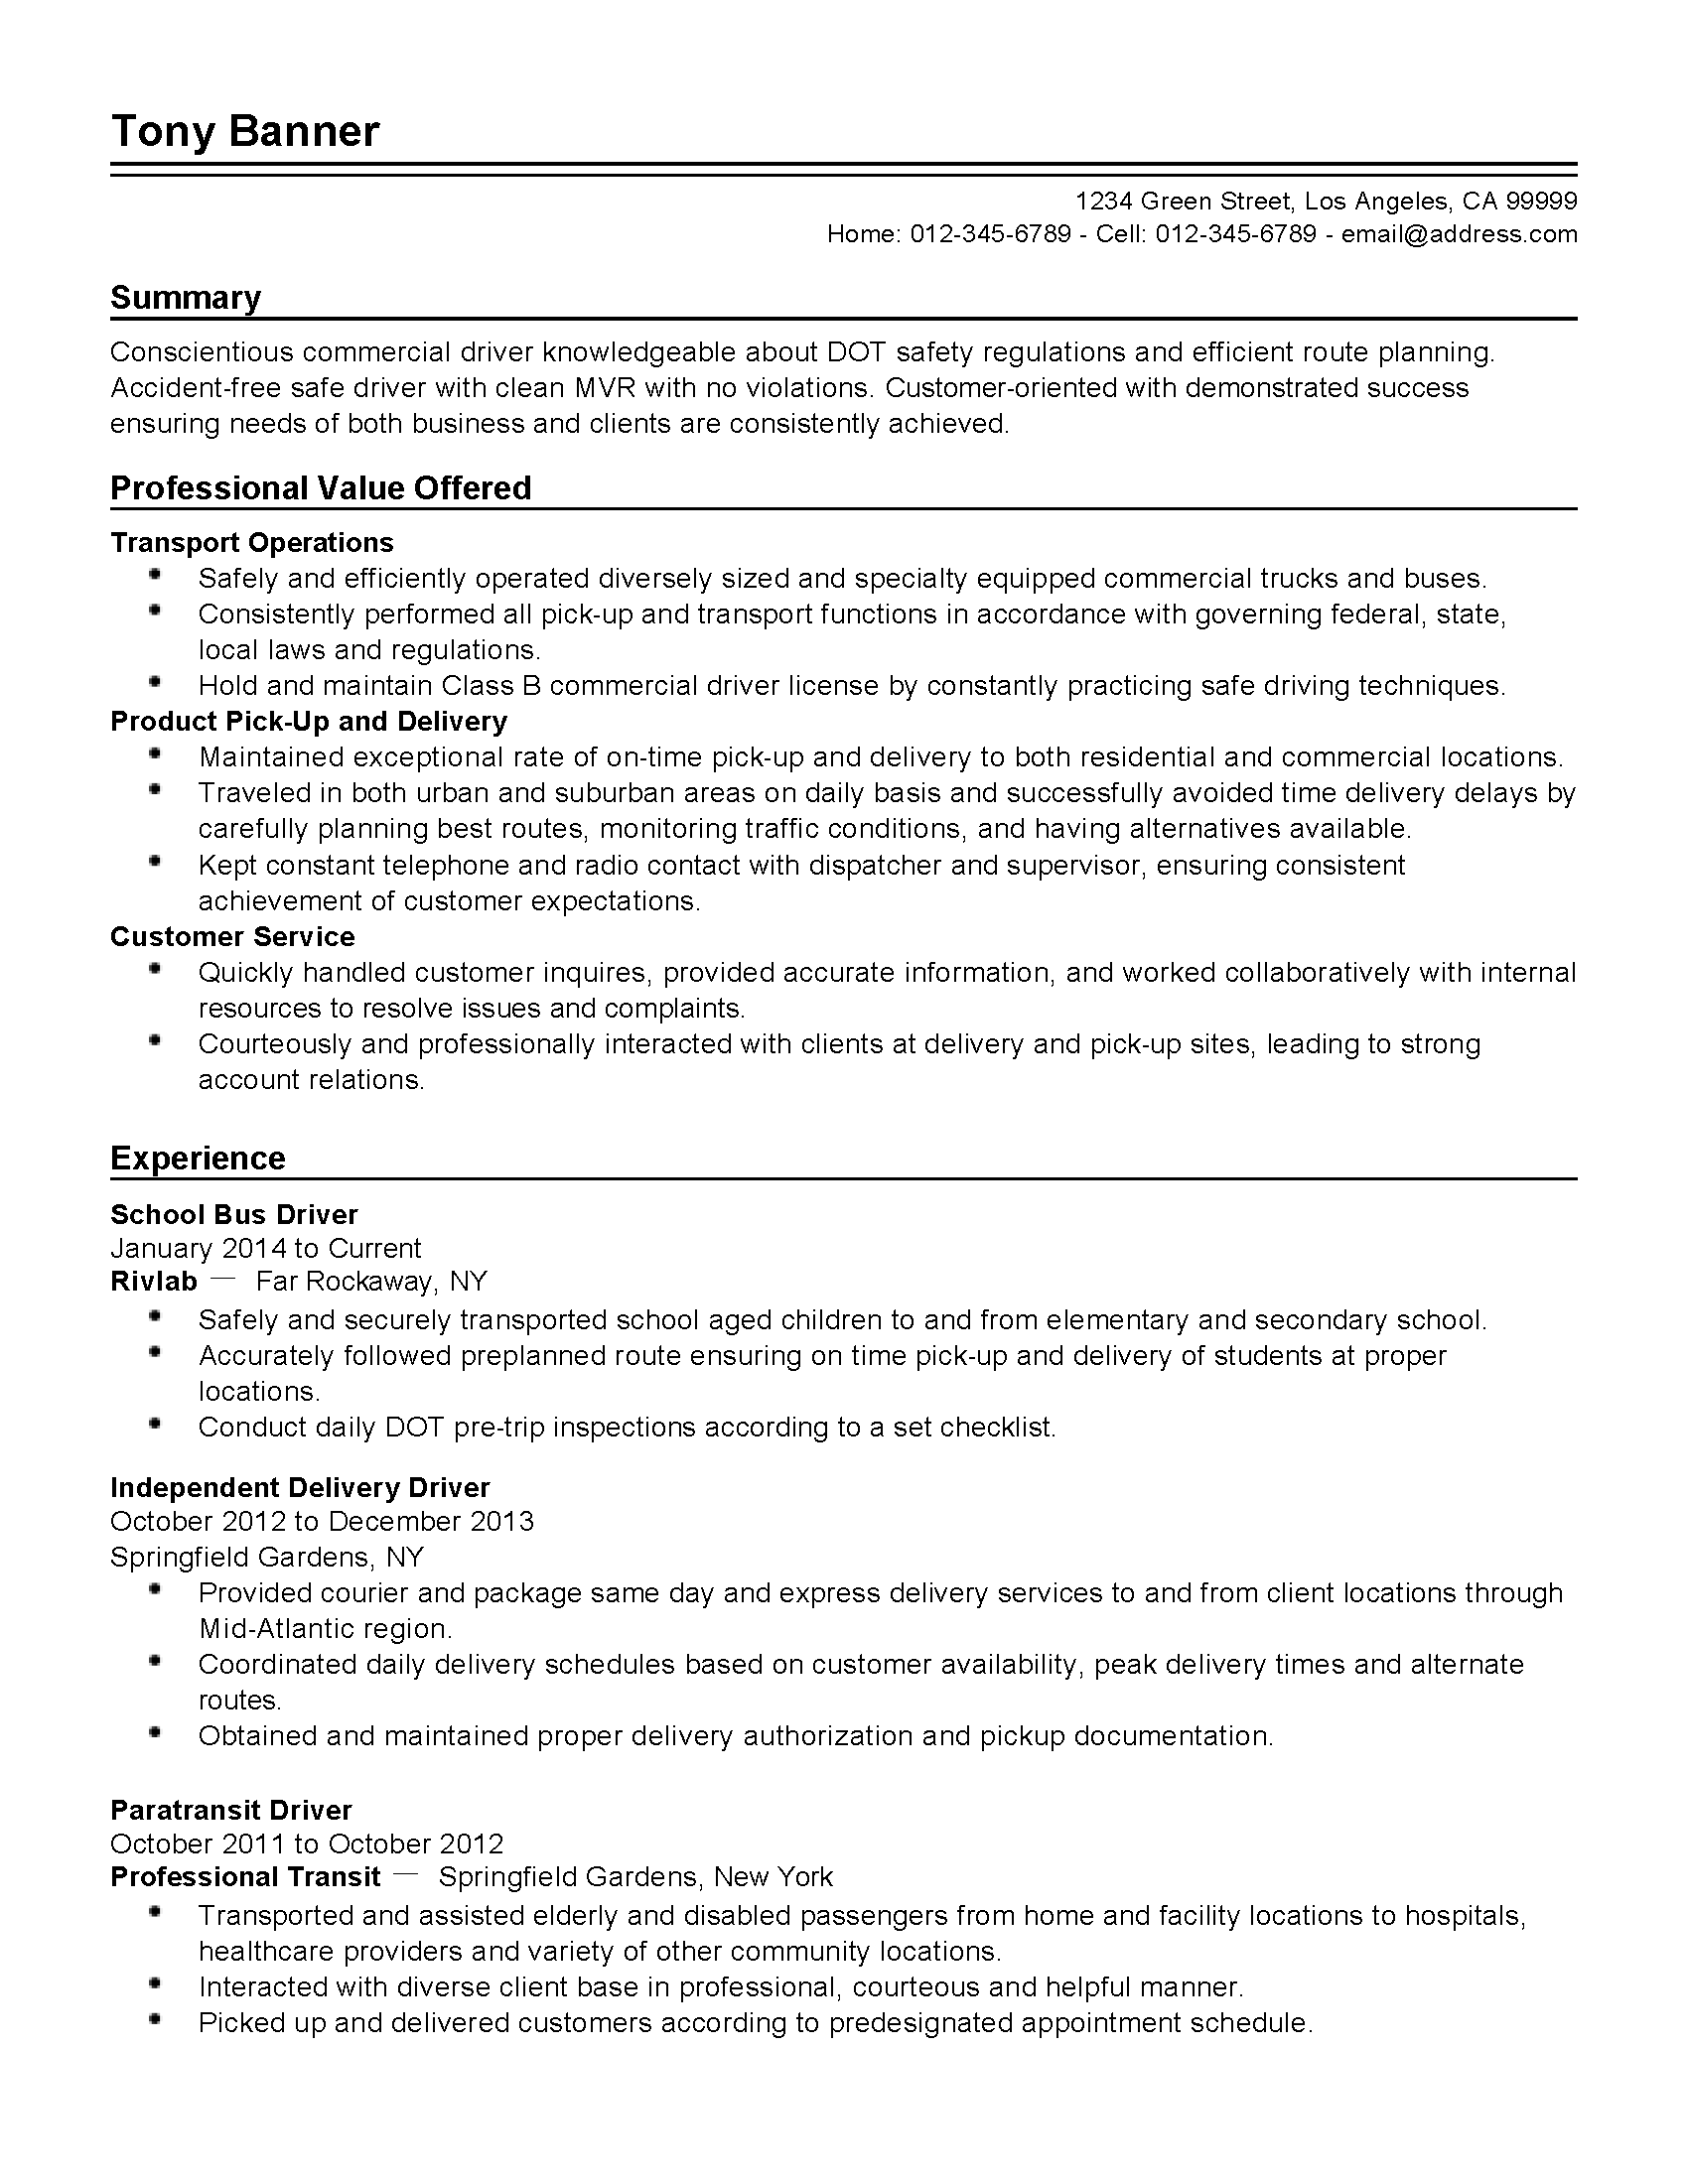 Driver Skills Resume Professional School Bus Driver Templates To Showcase Your